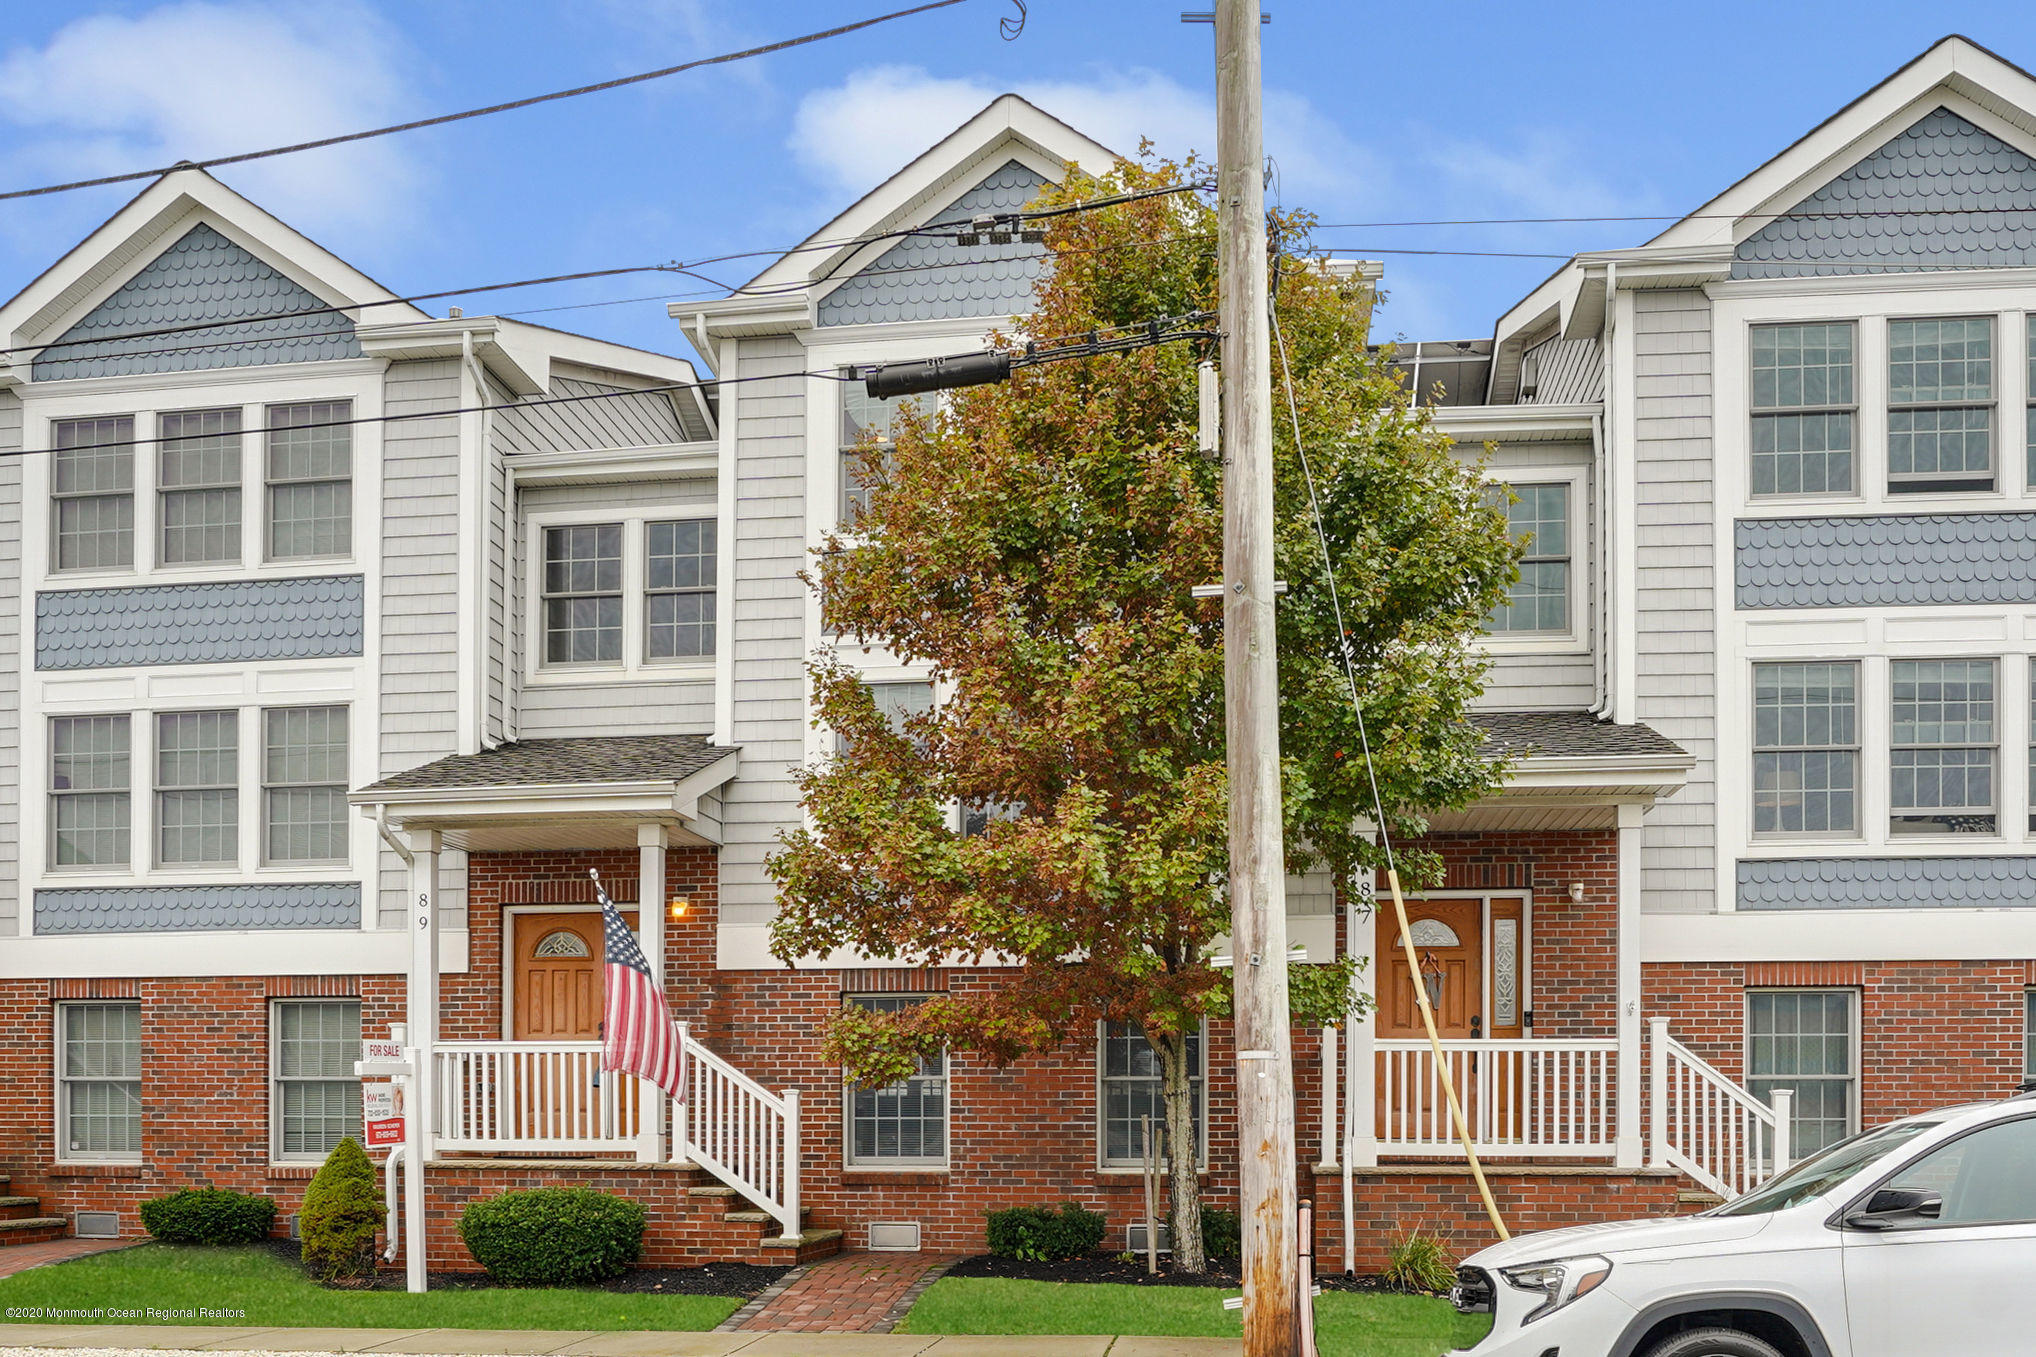 Photo of 89 Chicago Avenue, Point Pleasant Beach, NJ 08742